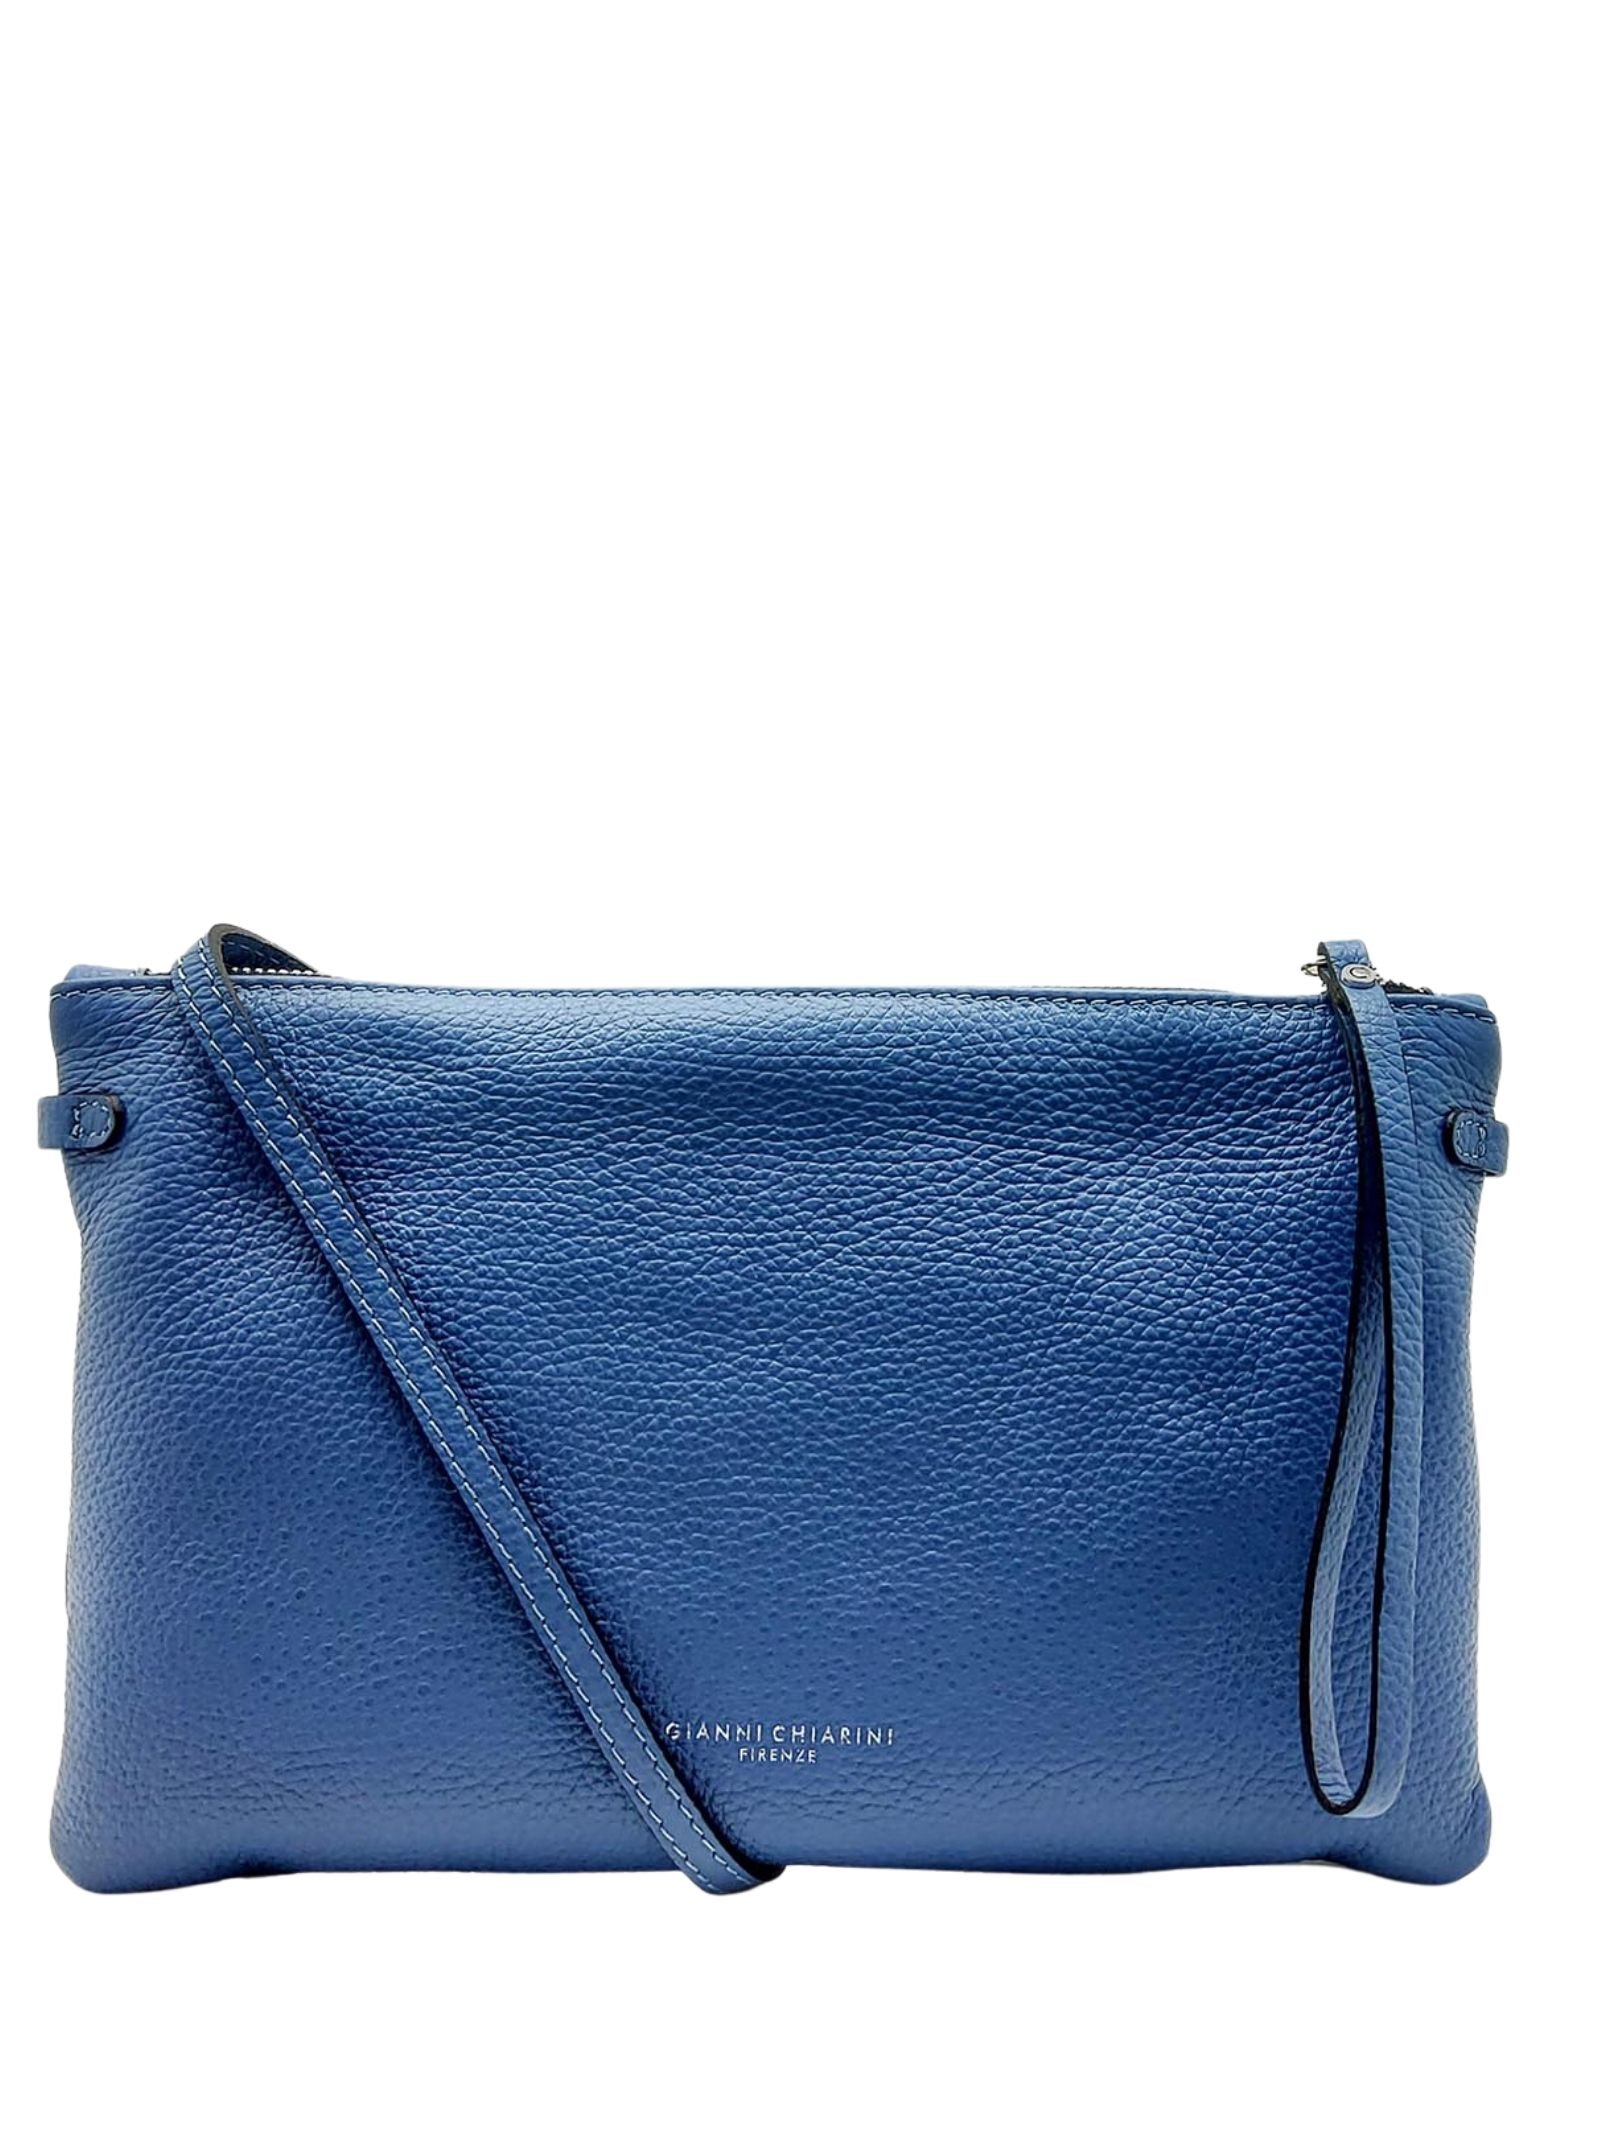 Hermy large women's clutch bag in powder blue leather with handle and adjustable and removable shoulder strap Gianni Chiarini | Bags and backpacks | BS369511710